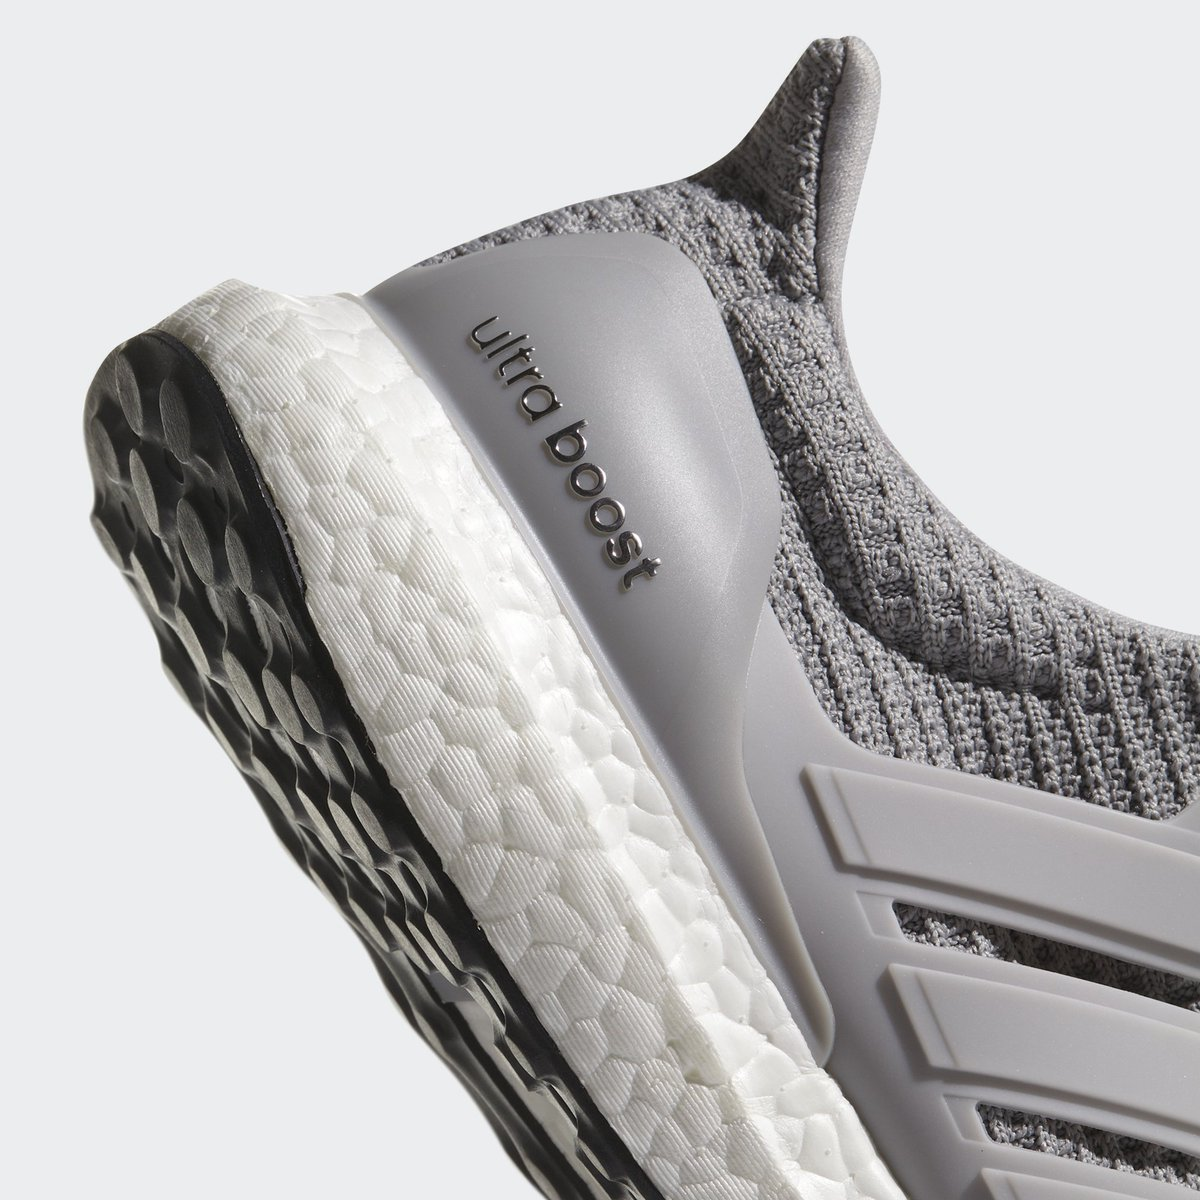 950ff7c4a03 Now  114 shipped. Sign up for newsletter for 15% off. Ultra Boost  http   bit.ly 2CsGer4 Newsletter http   bit.ly 2UMAsaU pic.twitter .com 5W7rsIUYoB